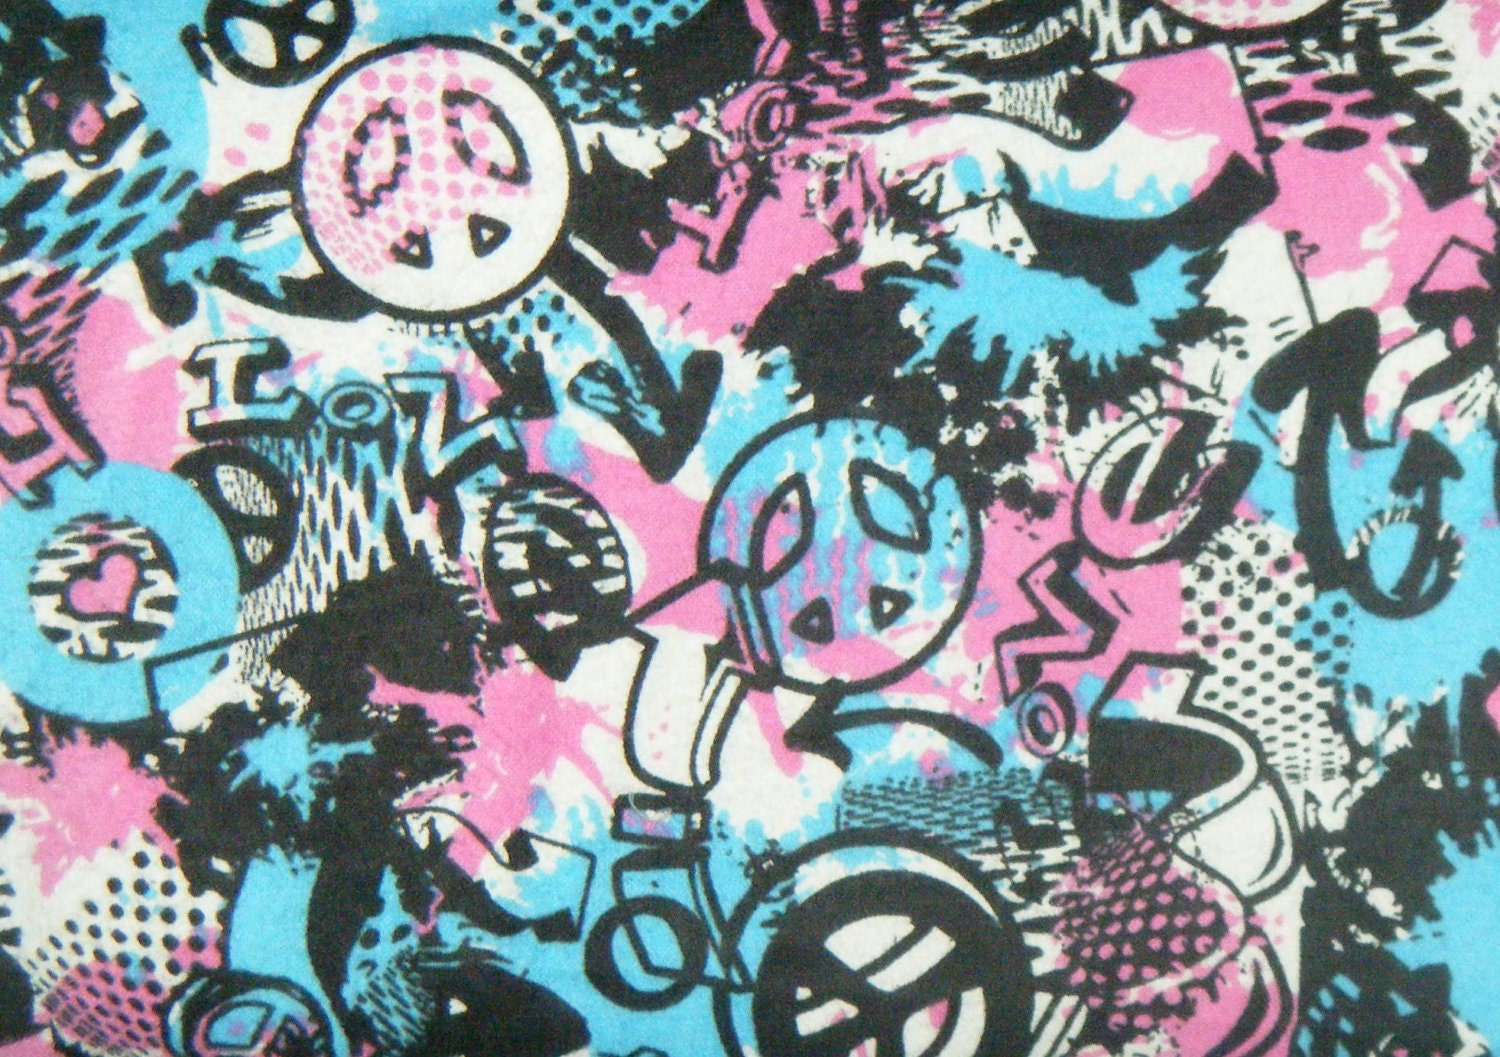 Reserved Listing For Groovy Graffiti Flannel Fabric 2 Yards